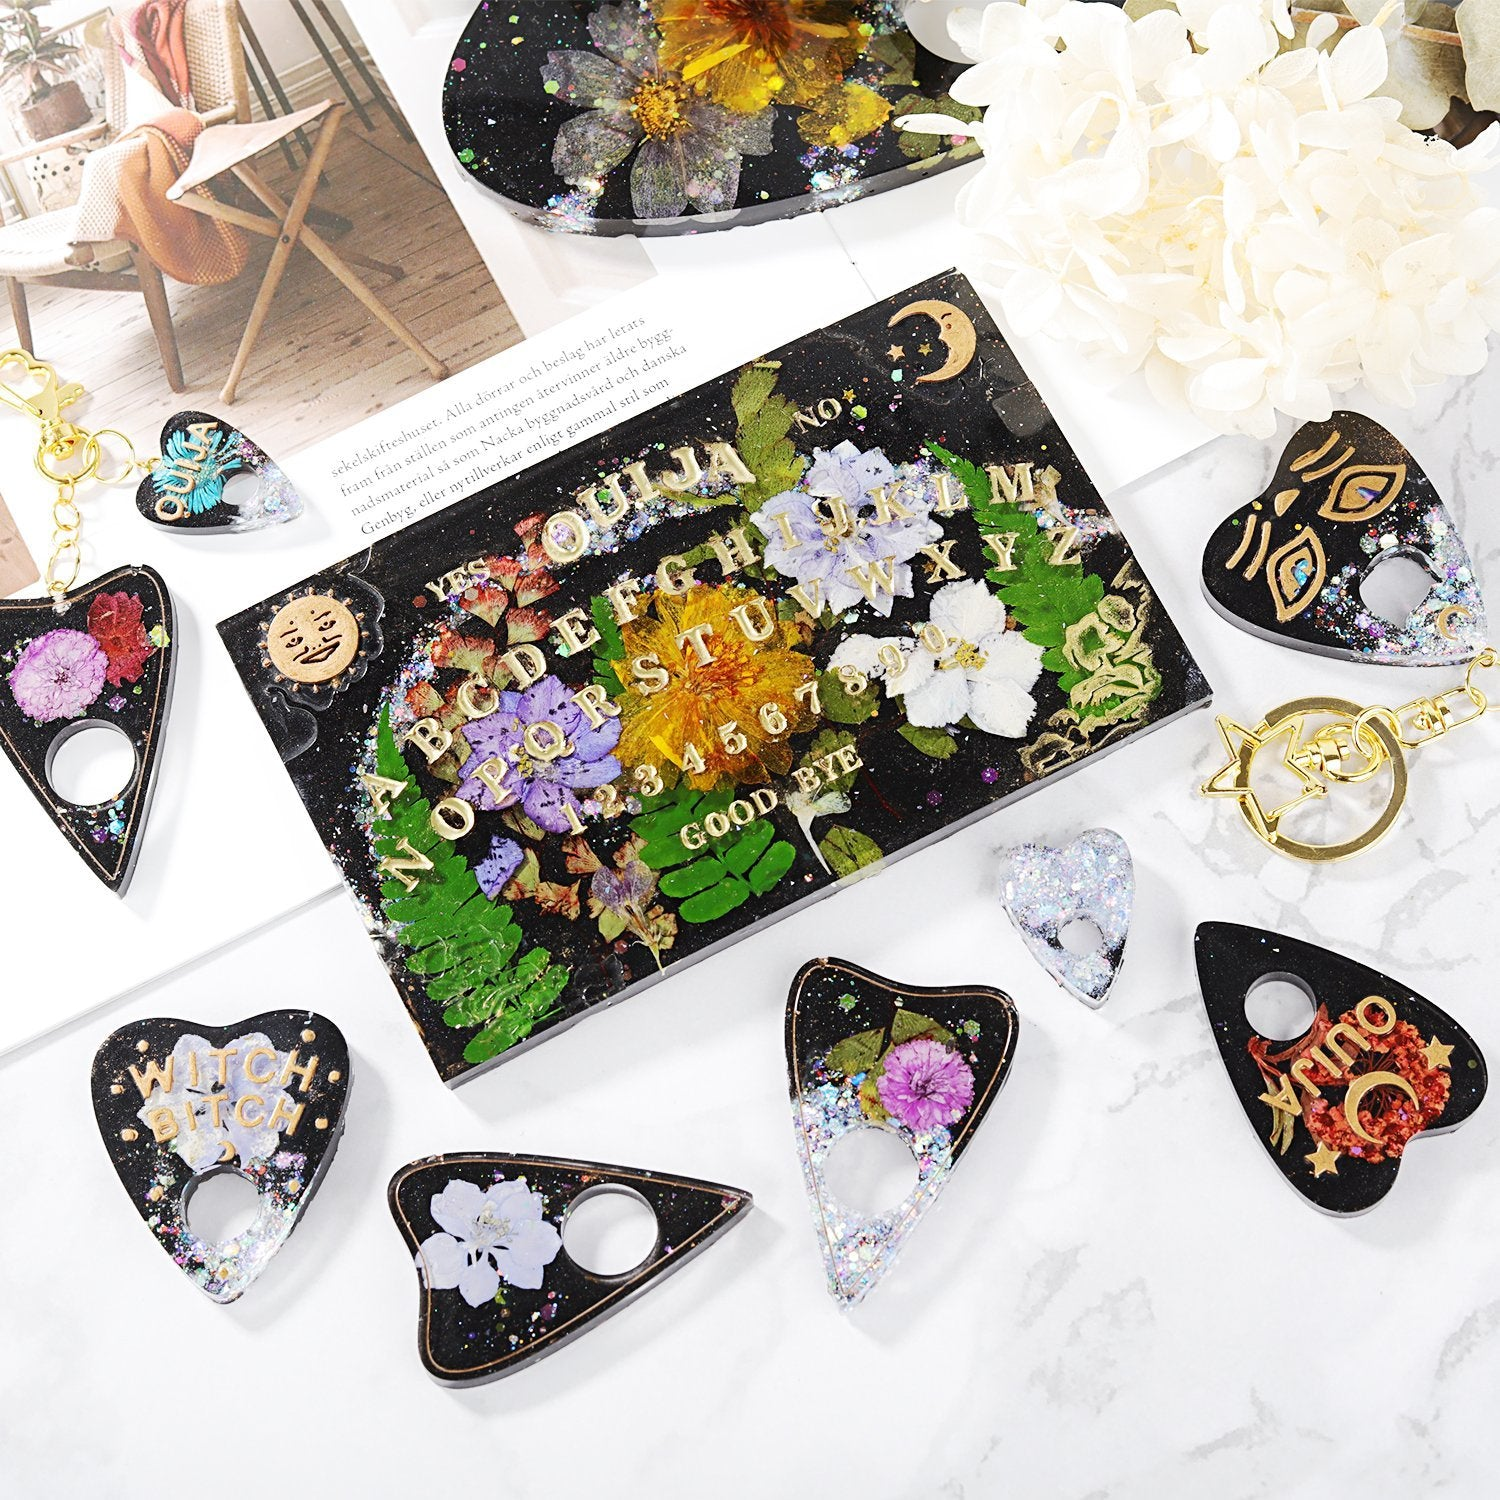 Making Decoration 2PCS Epoxy Molds with 14 Shapes for Resin Crafts DIY LETS RESIN Ouija Board Resin Molds and Planchette Silicone Molds for Resin